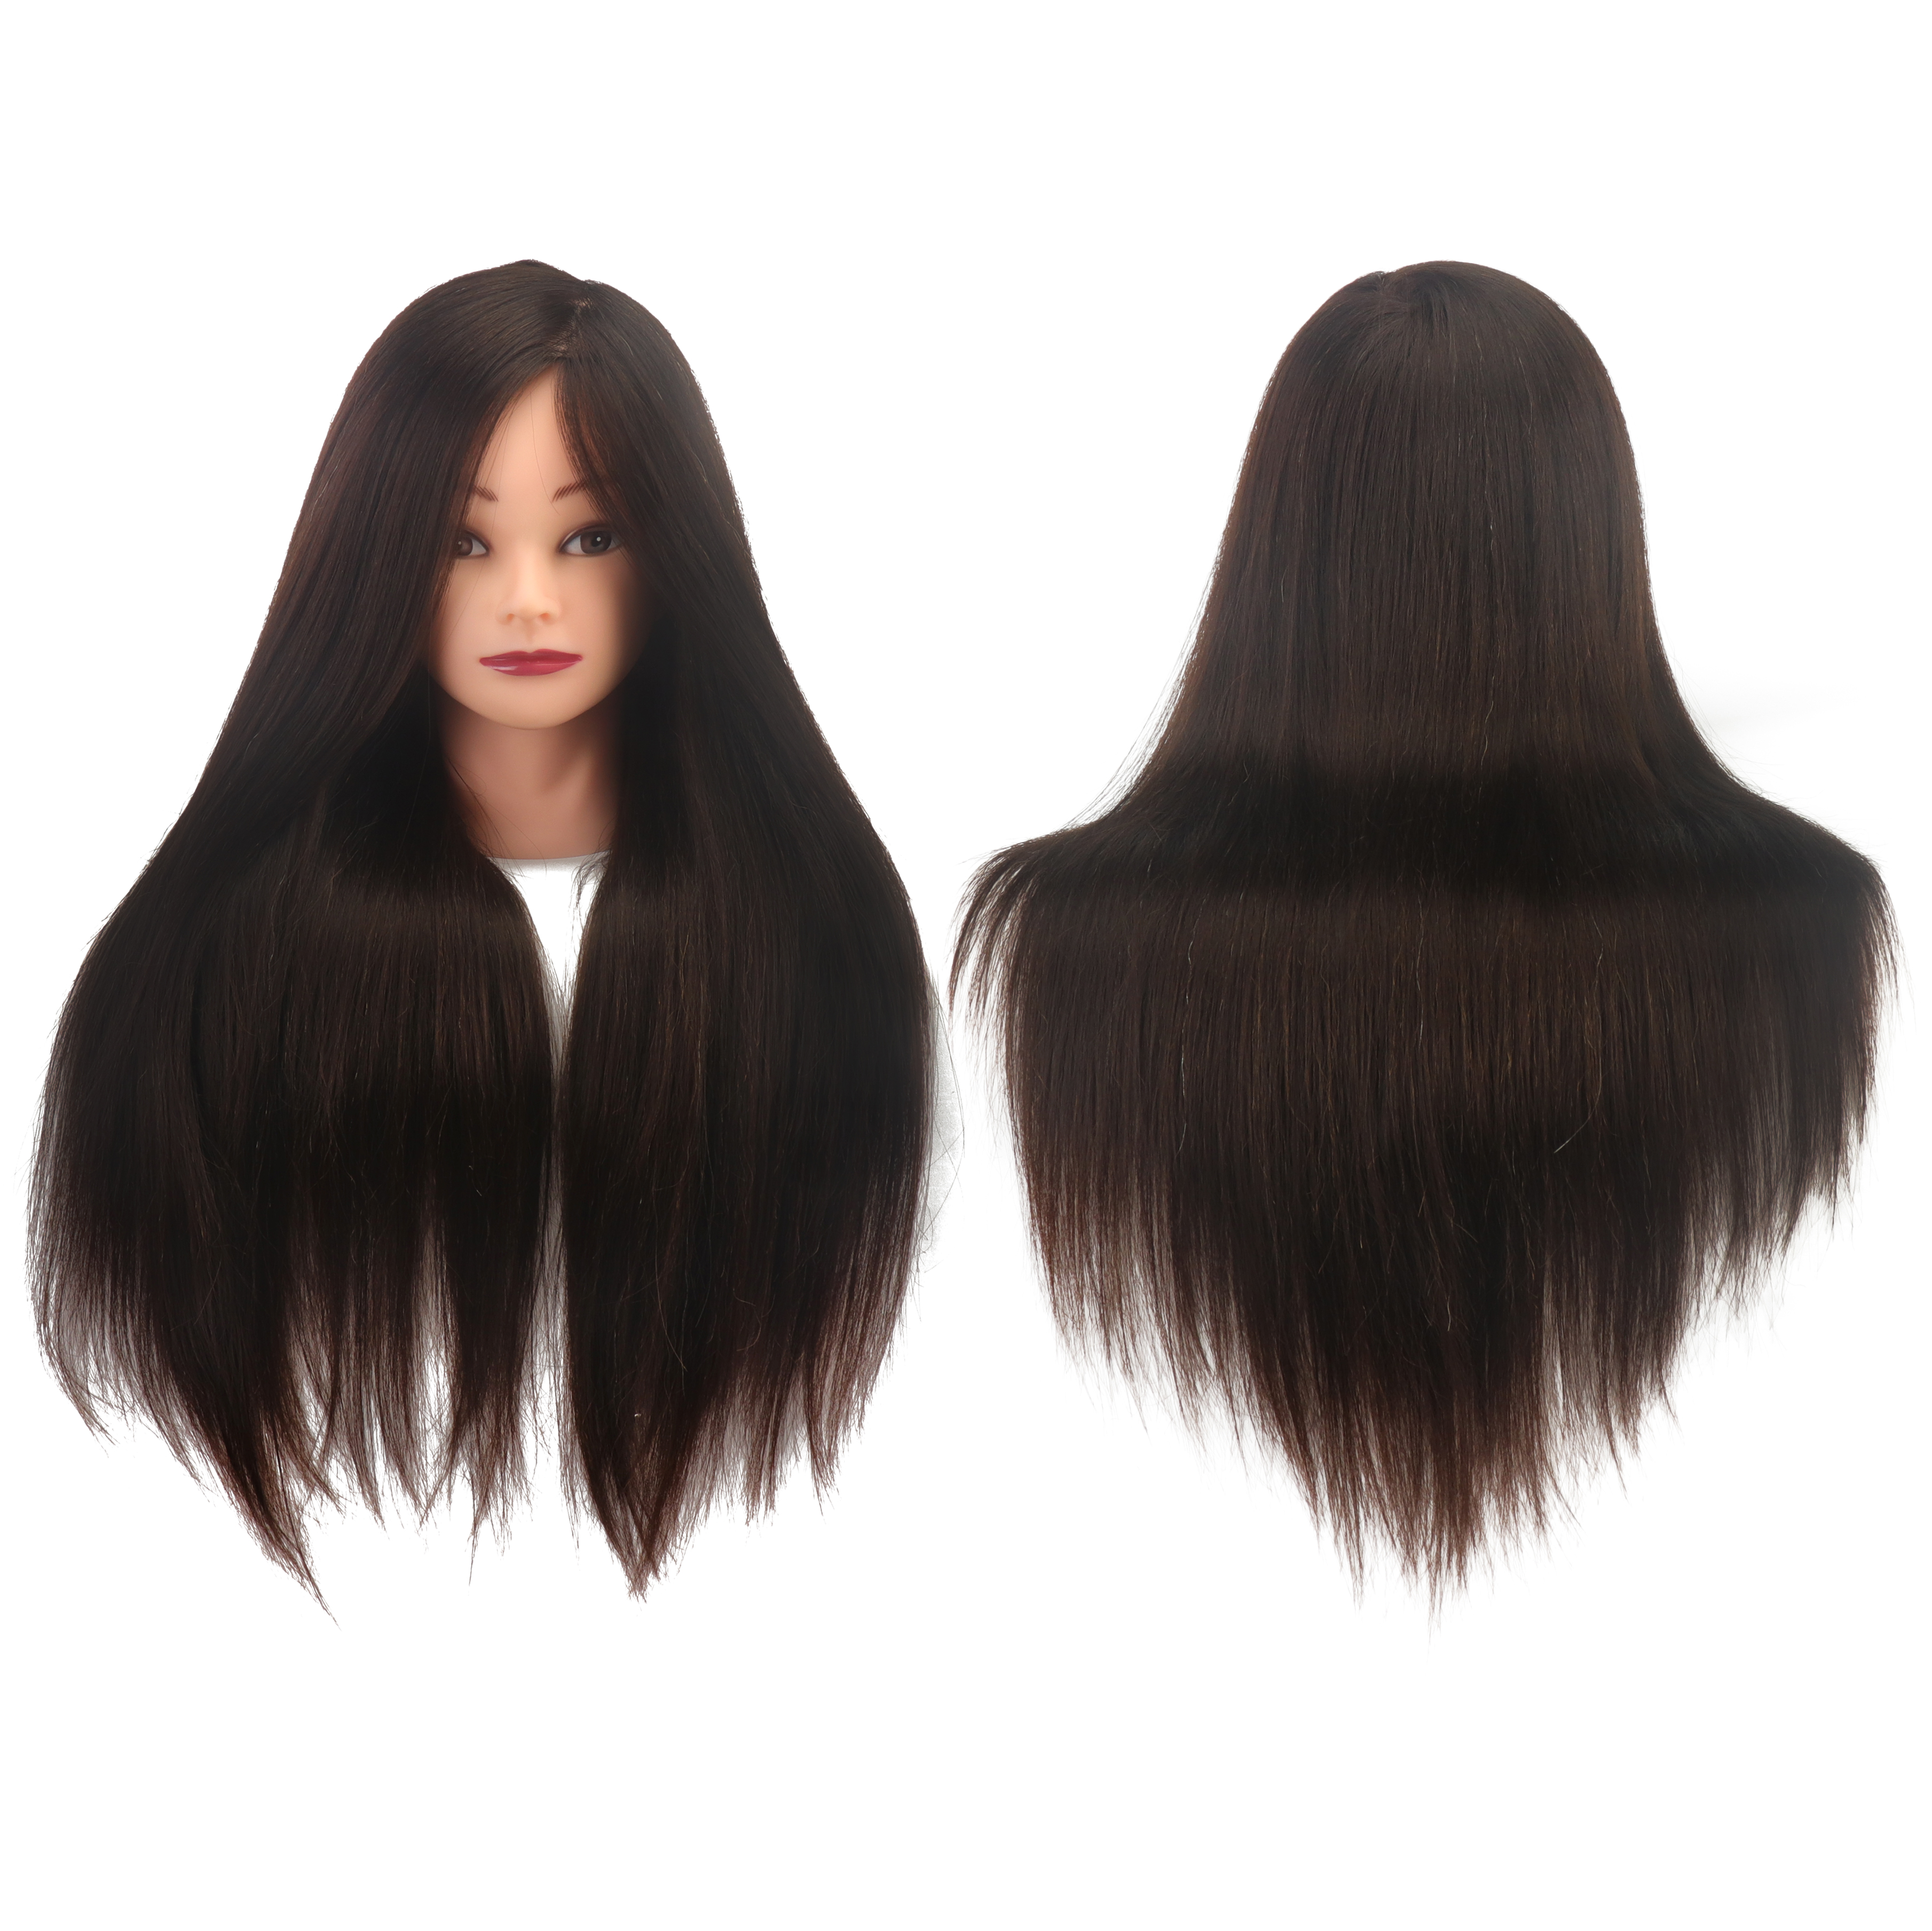 20 inches mixed maroon mannequin headstock long hair wig for hairdresser training head fiber mannequin Practice Head Model